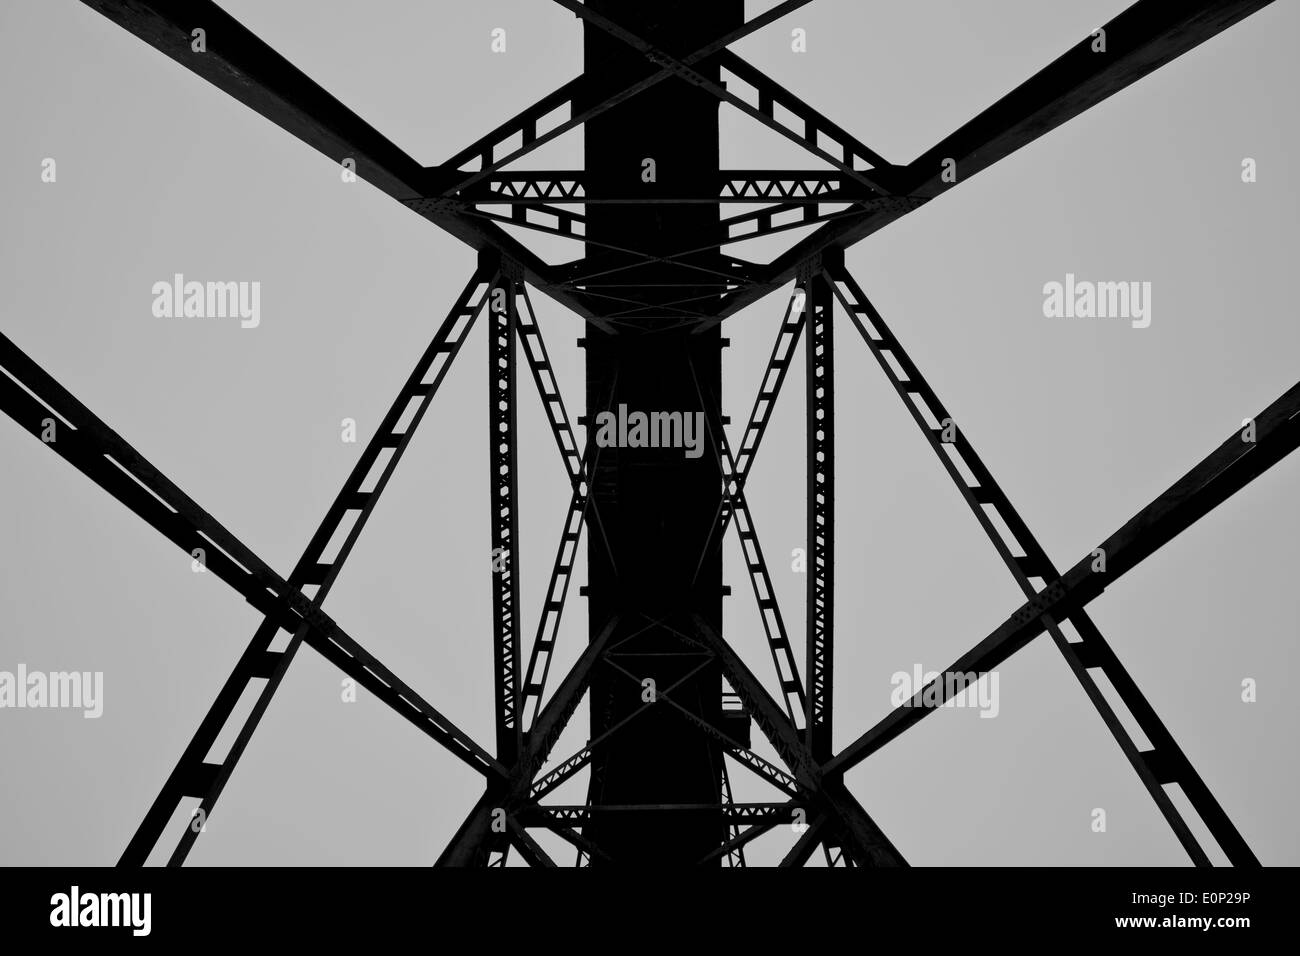 Train Trestle seen from below in black and white - Stock Image